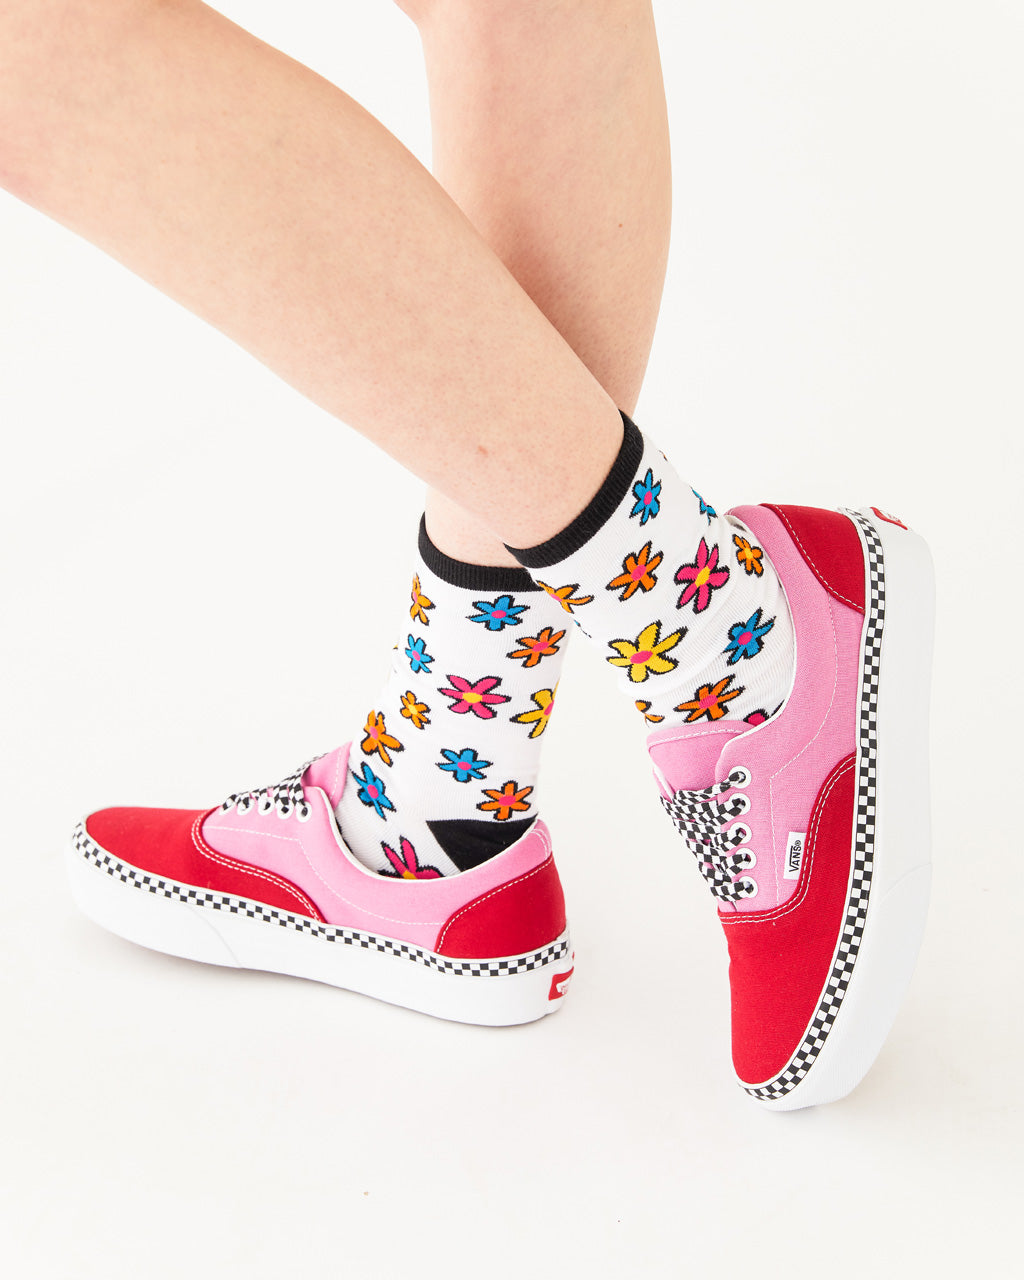 white above the ankle socks with a multi flower pattern and a black heel, toe, and band shown on model wearing pink vans